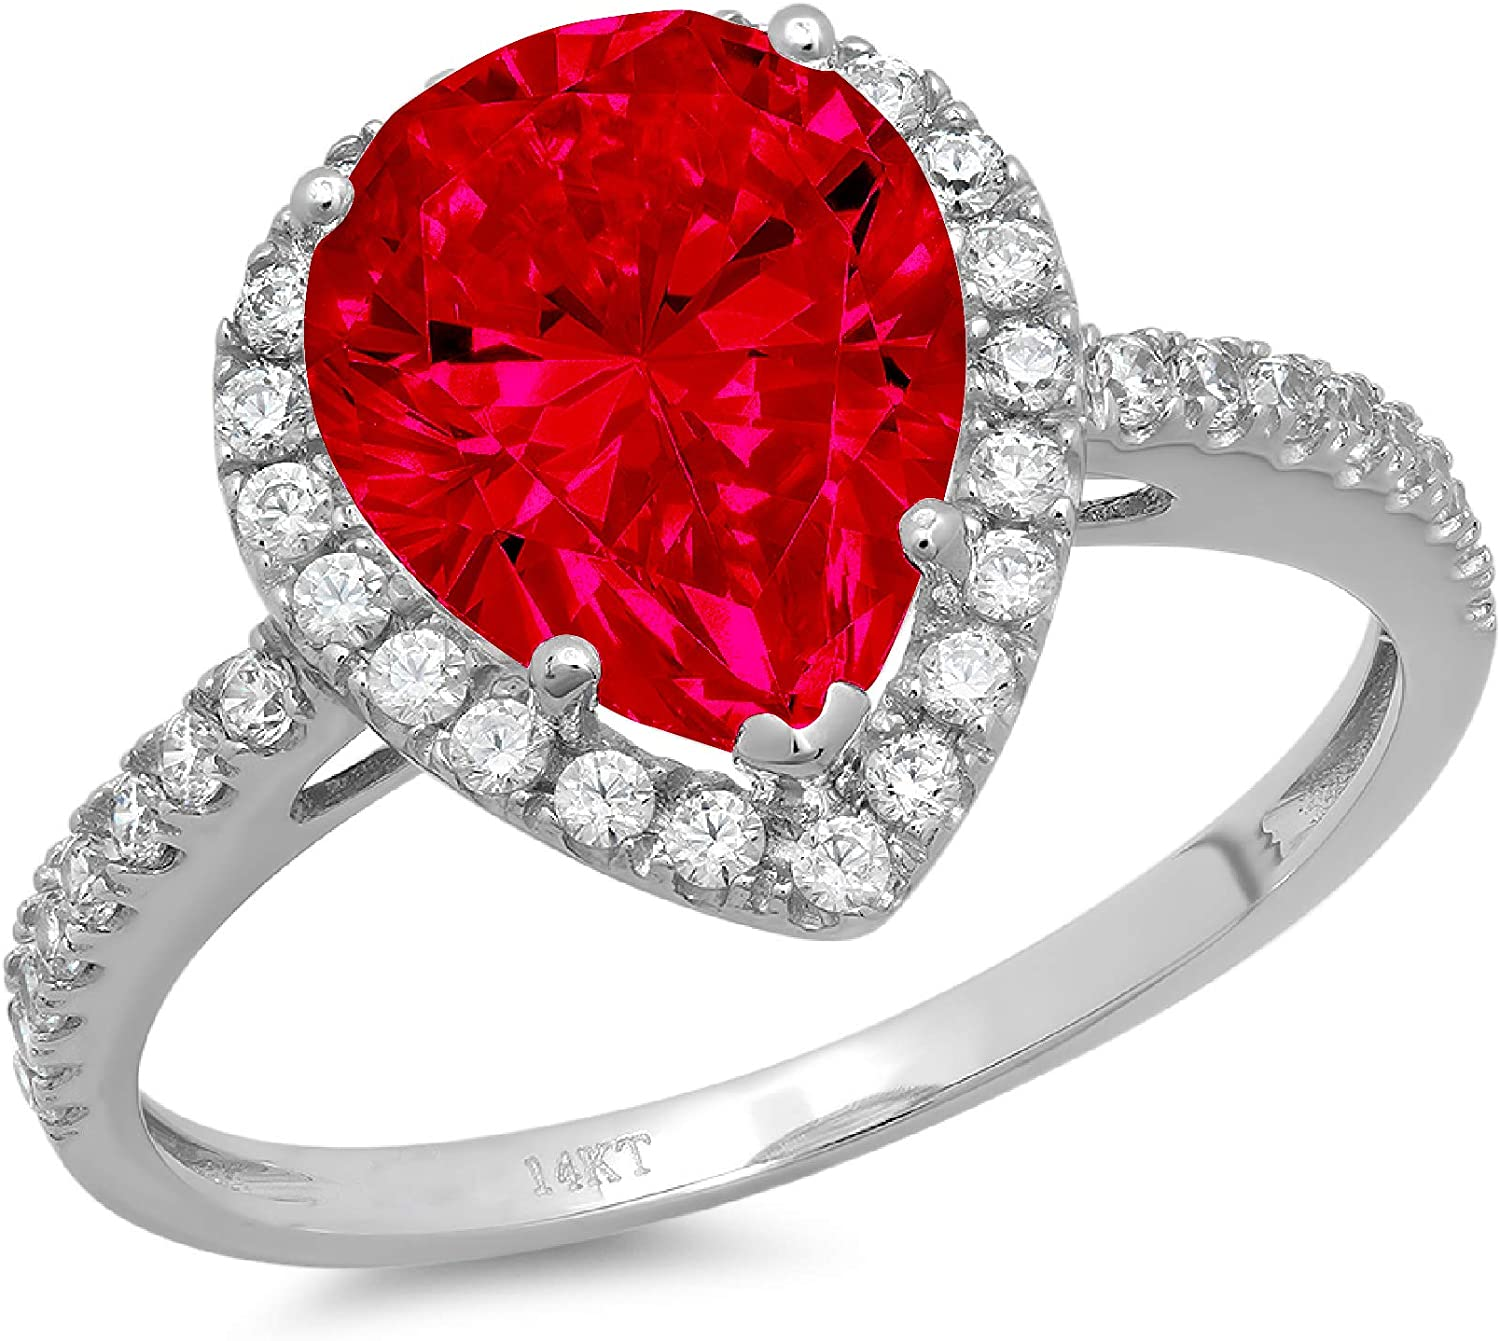 2.39ct Brilliant Pear Cut Solitaire with Accent Halo Flawless Ideal VVS1 Simulated CZ Red Ruby Engagement Promise Statement Anniversary Bridal Wedding Designer Ring 14k White Gold